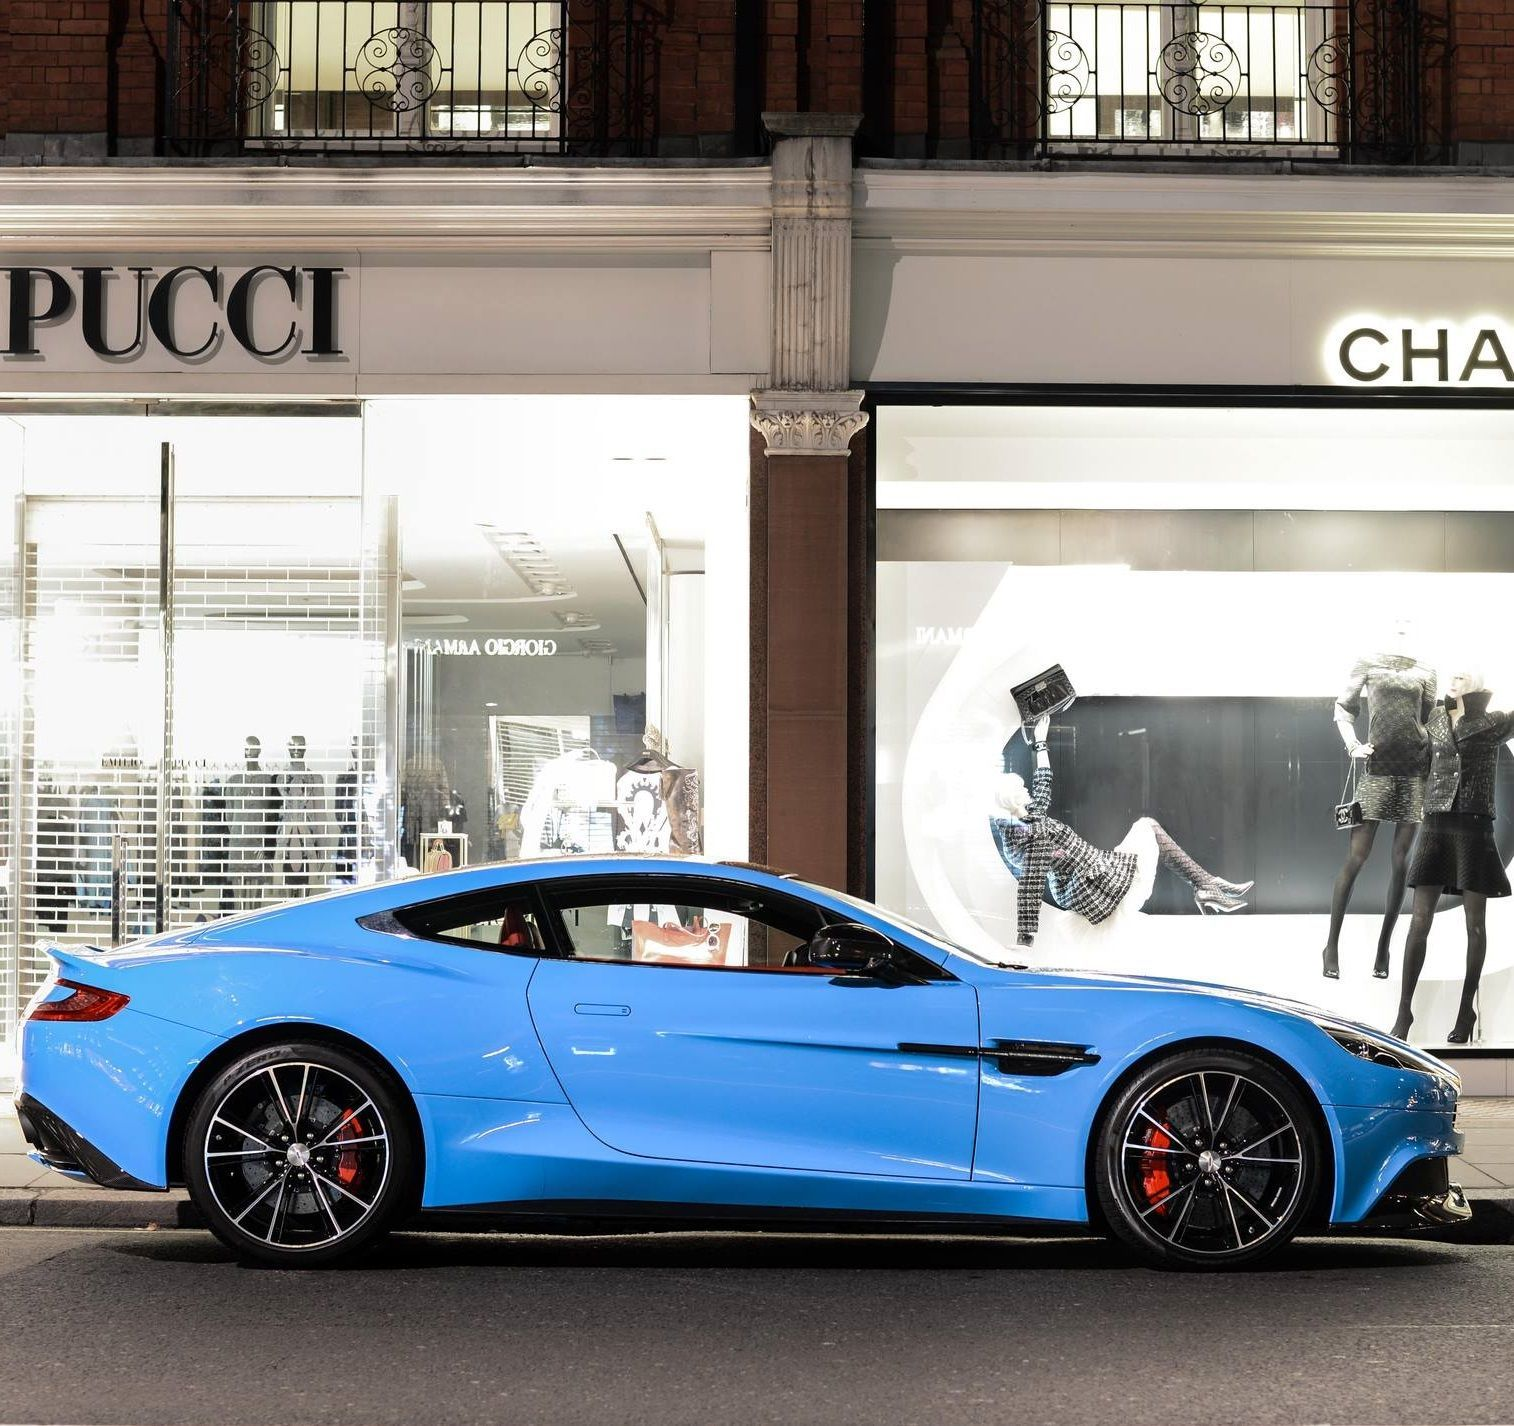 Aston Martin Vanquish Want more cars Check out my face book page